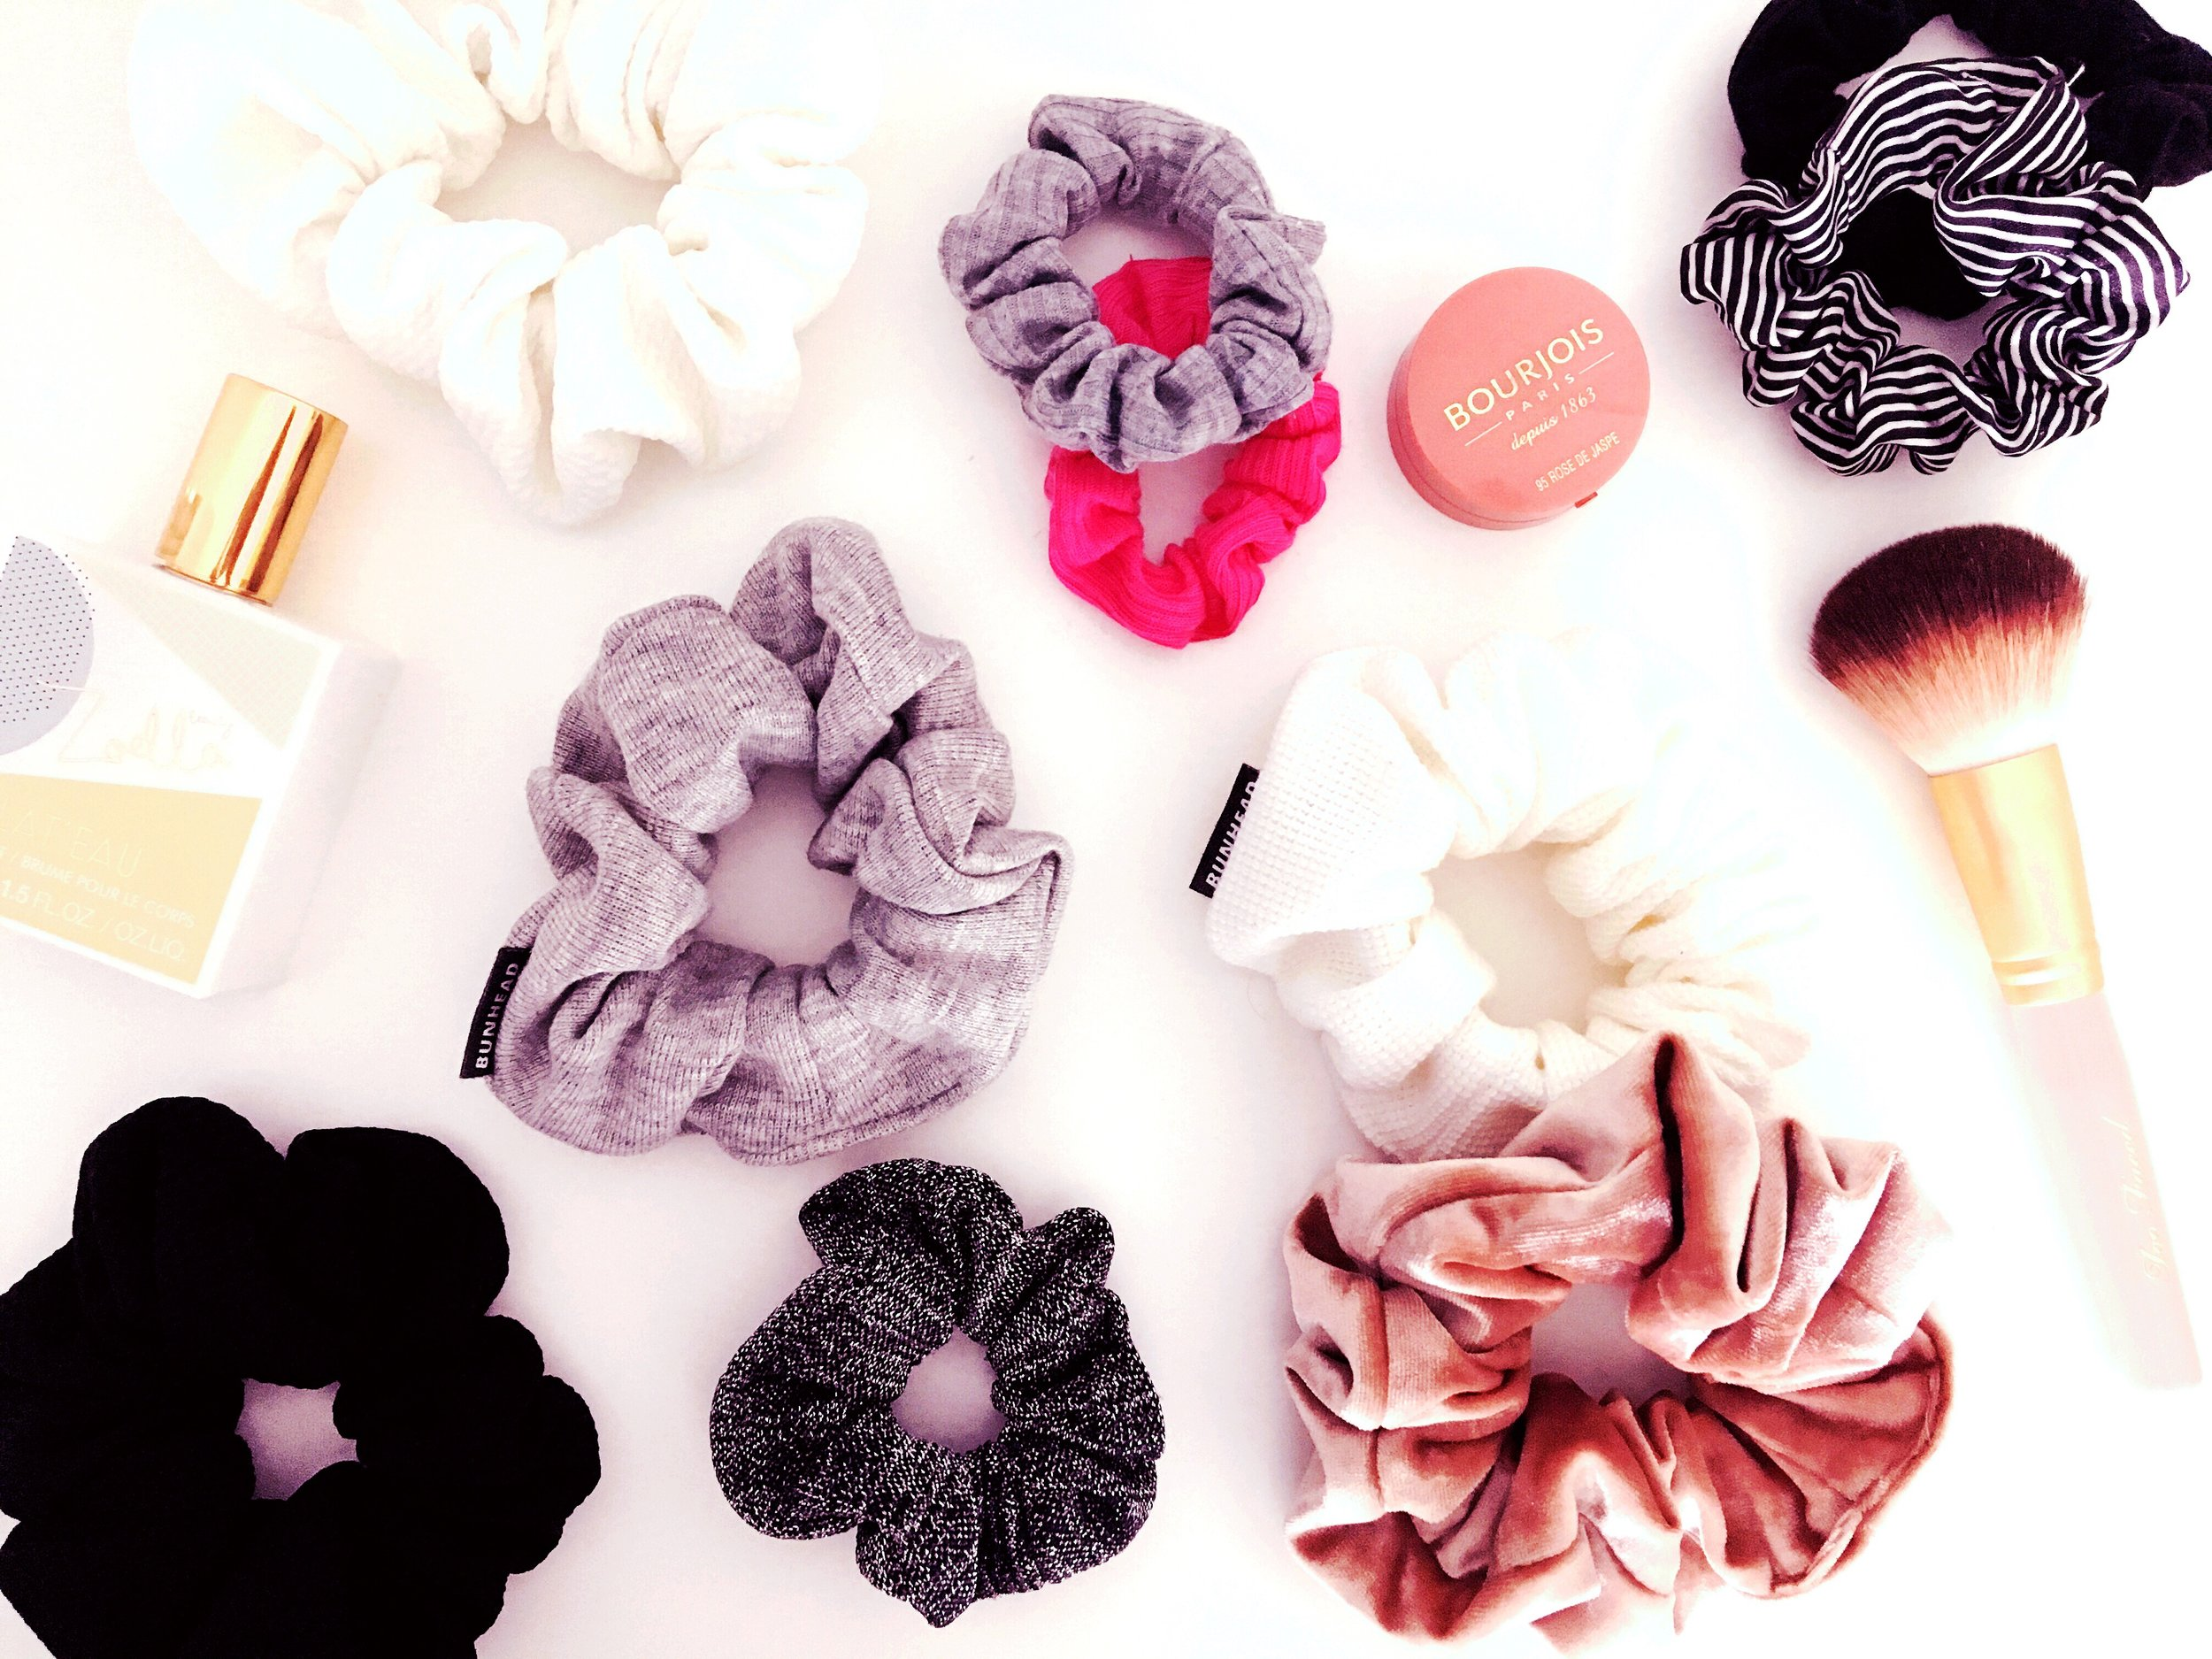 THE FUNKY FRESH / ORGANIZE YOUR SCRUNCHIES